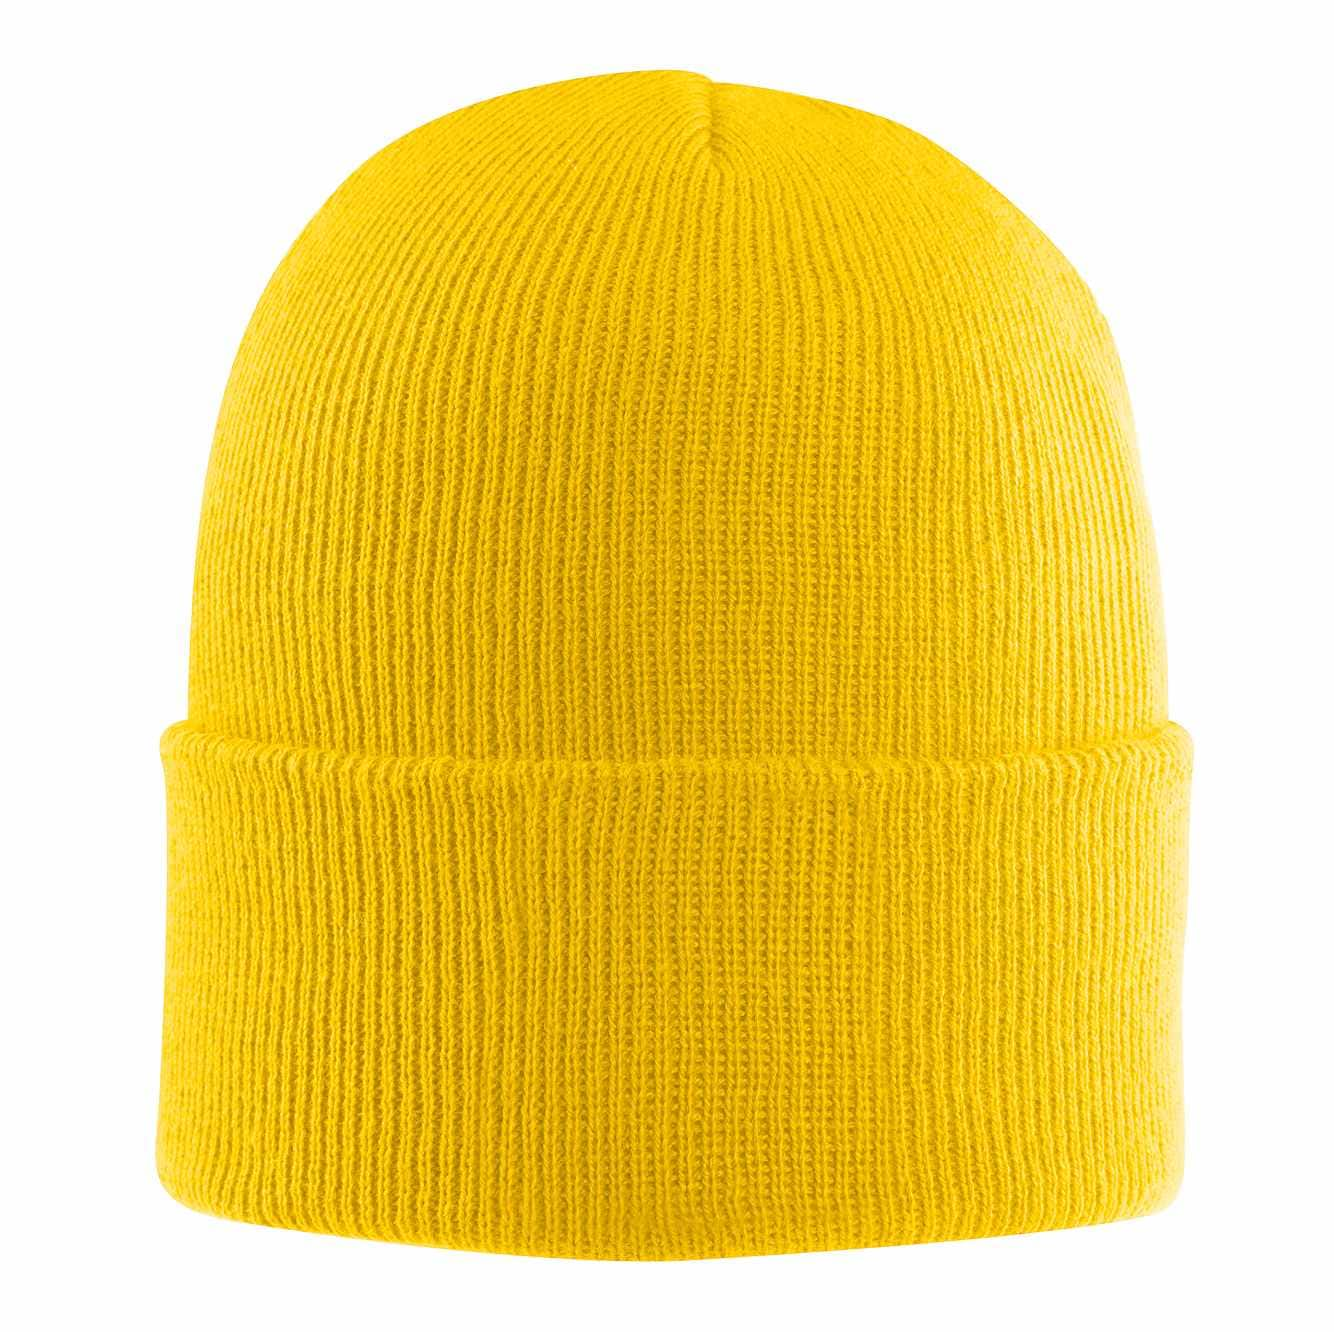 Picture of LSU Acrylic Watch Hat 1 in Spectra Yellow